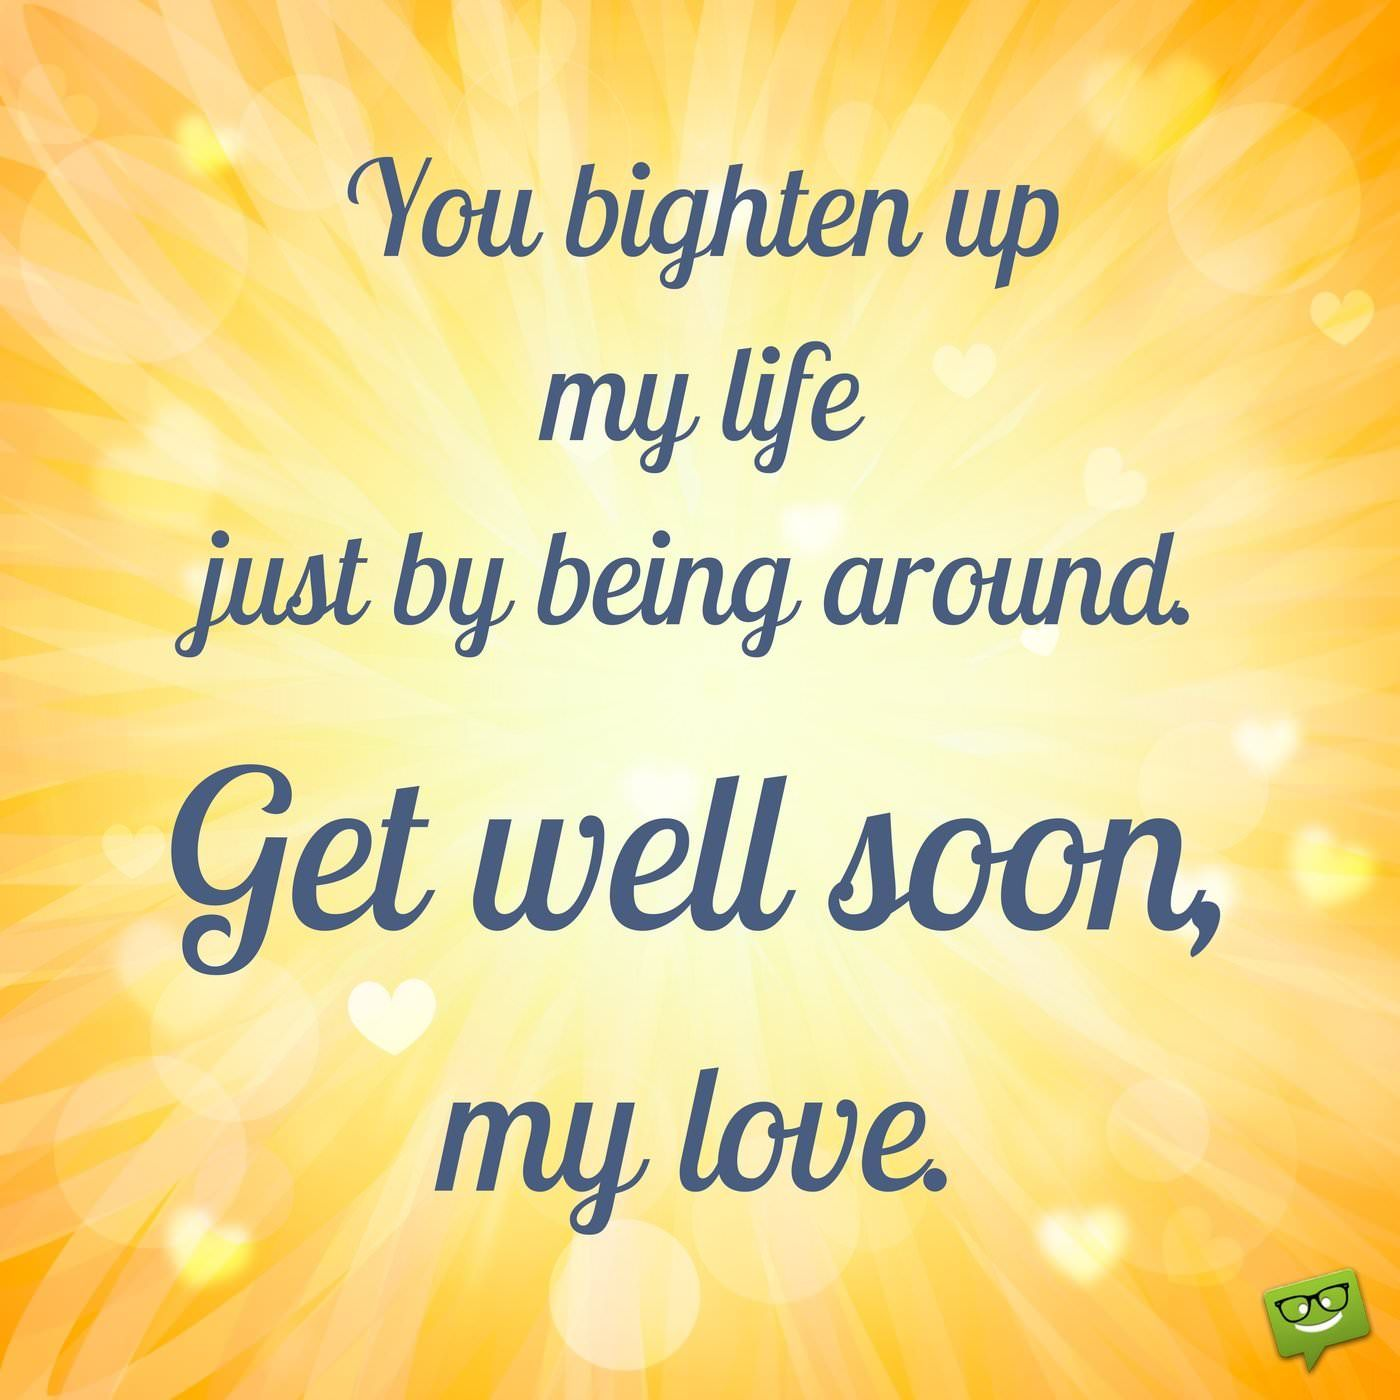 Get Well Soon My Love Quotes Get Well Wellness Get Well Soon